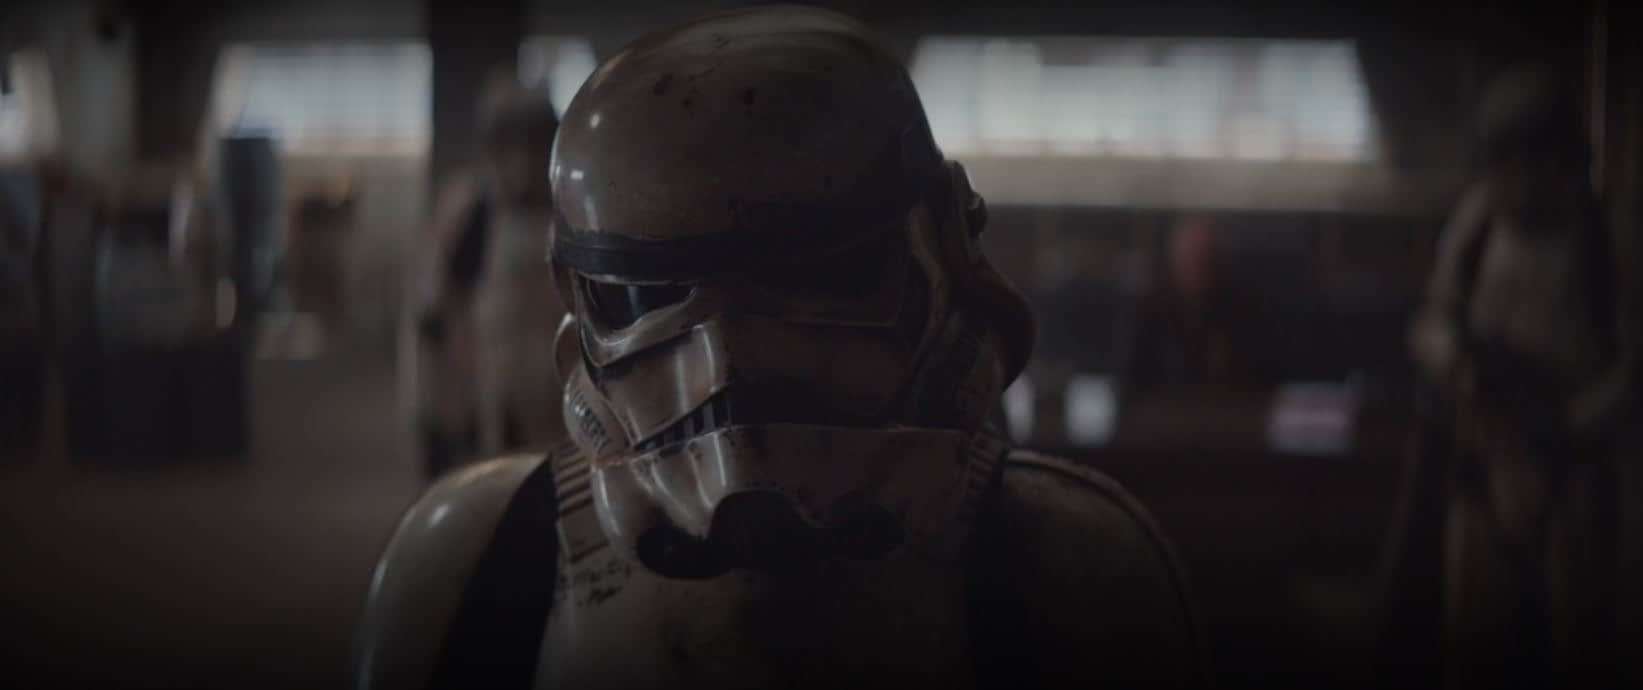 """The Mandalorian"" S01 Ep01: Star Wars Rocks in a Whole New Way (Spoiler Review)"